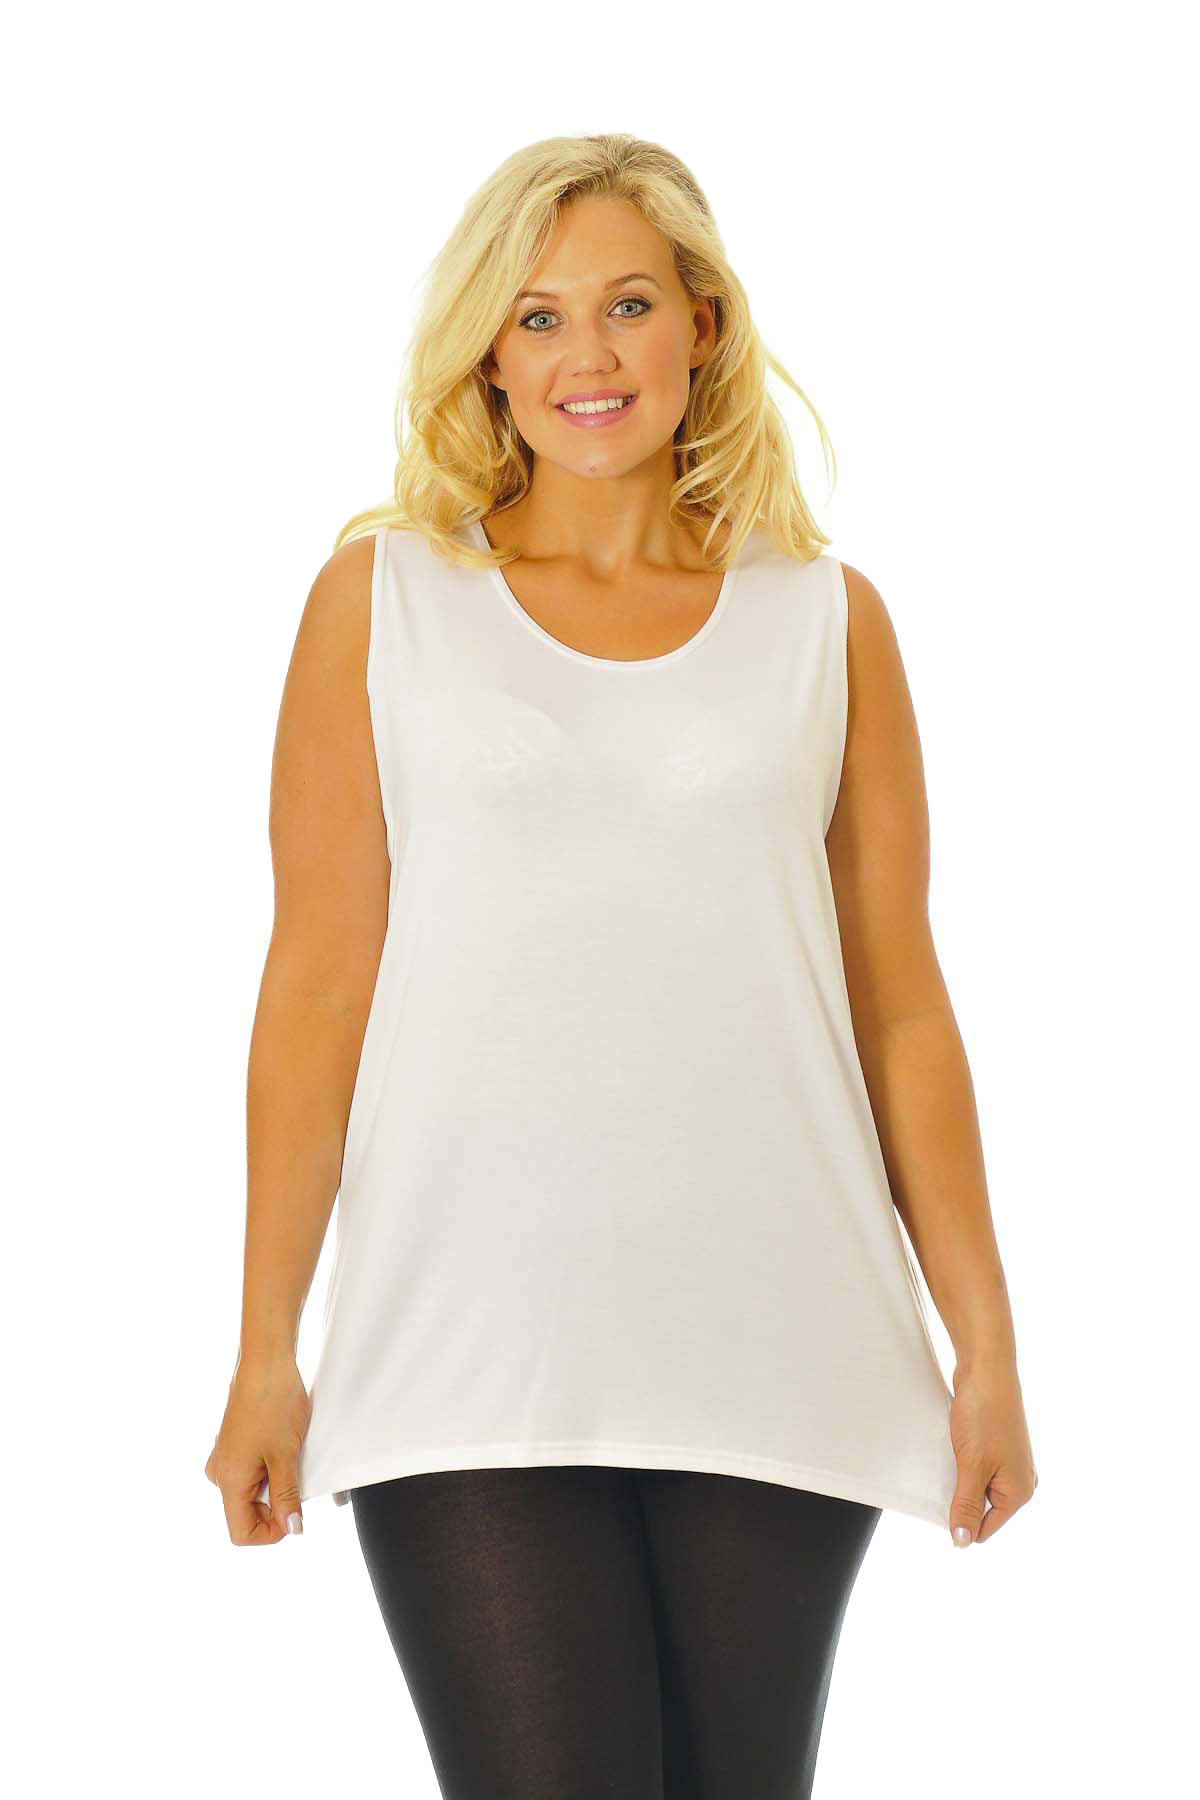 Plus size tops combine stylish looks and comfortable designs. Freshen up your wardrobe with a few new plus size tops. Tees, blouses and tanks open up brand new possibilities in your wardrobe with fits that flatter all figures. Reinvent your favorite jeans with a fun graphic tee or a beautiful tiered tank top.